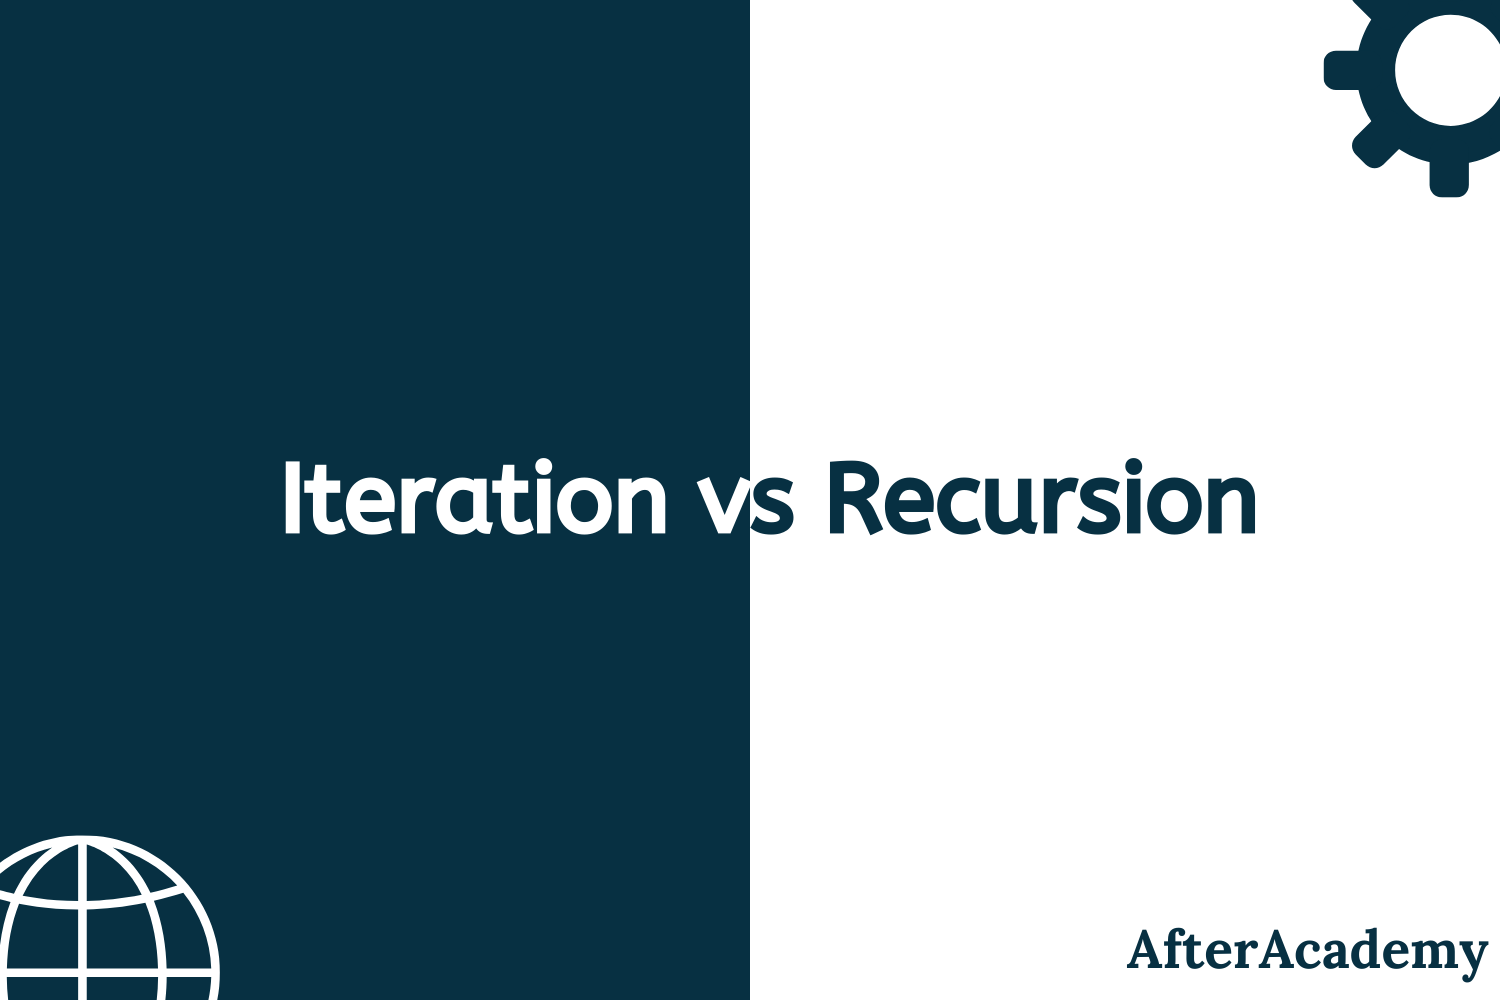 What is the difference between iteration and recursion?